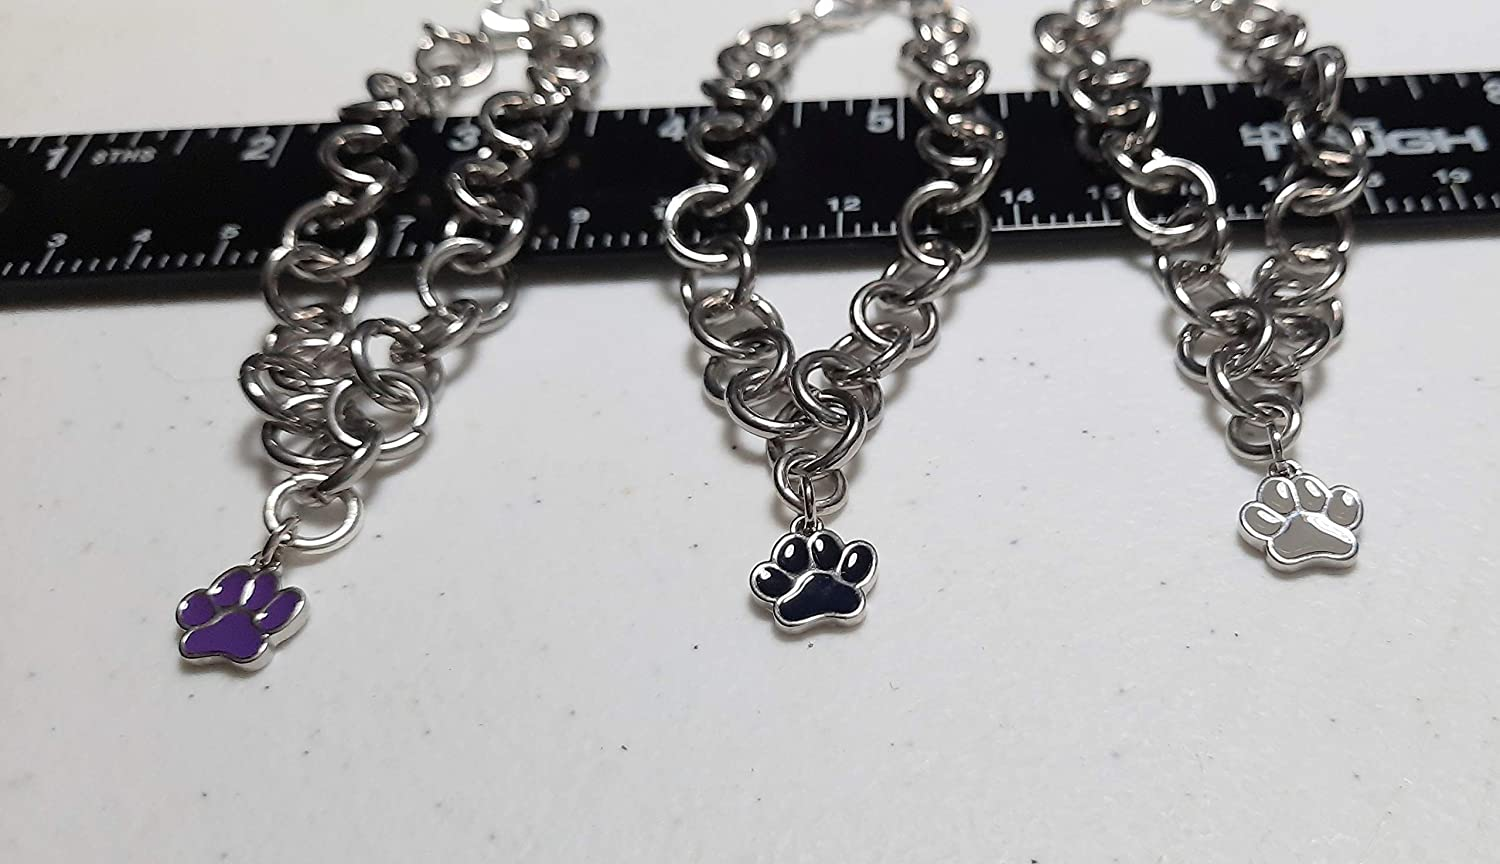 Linked Paws Max 66% OFF Bracelet High quality new